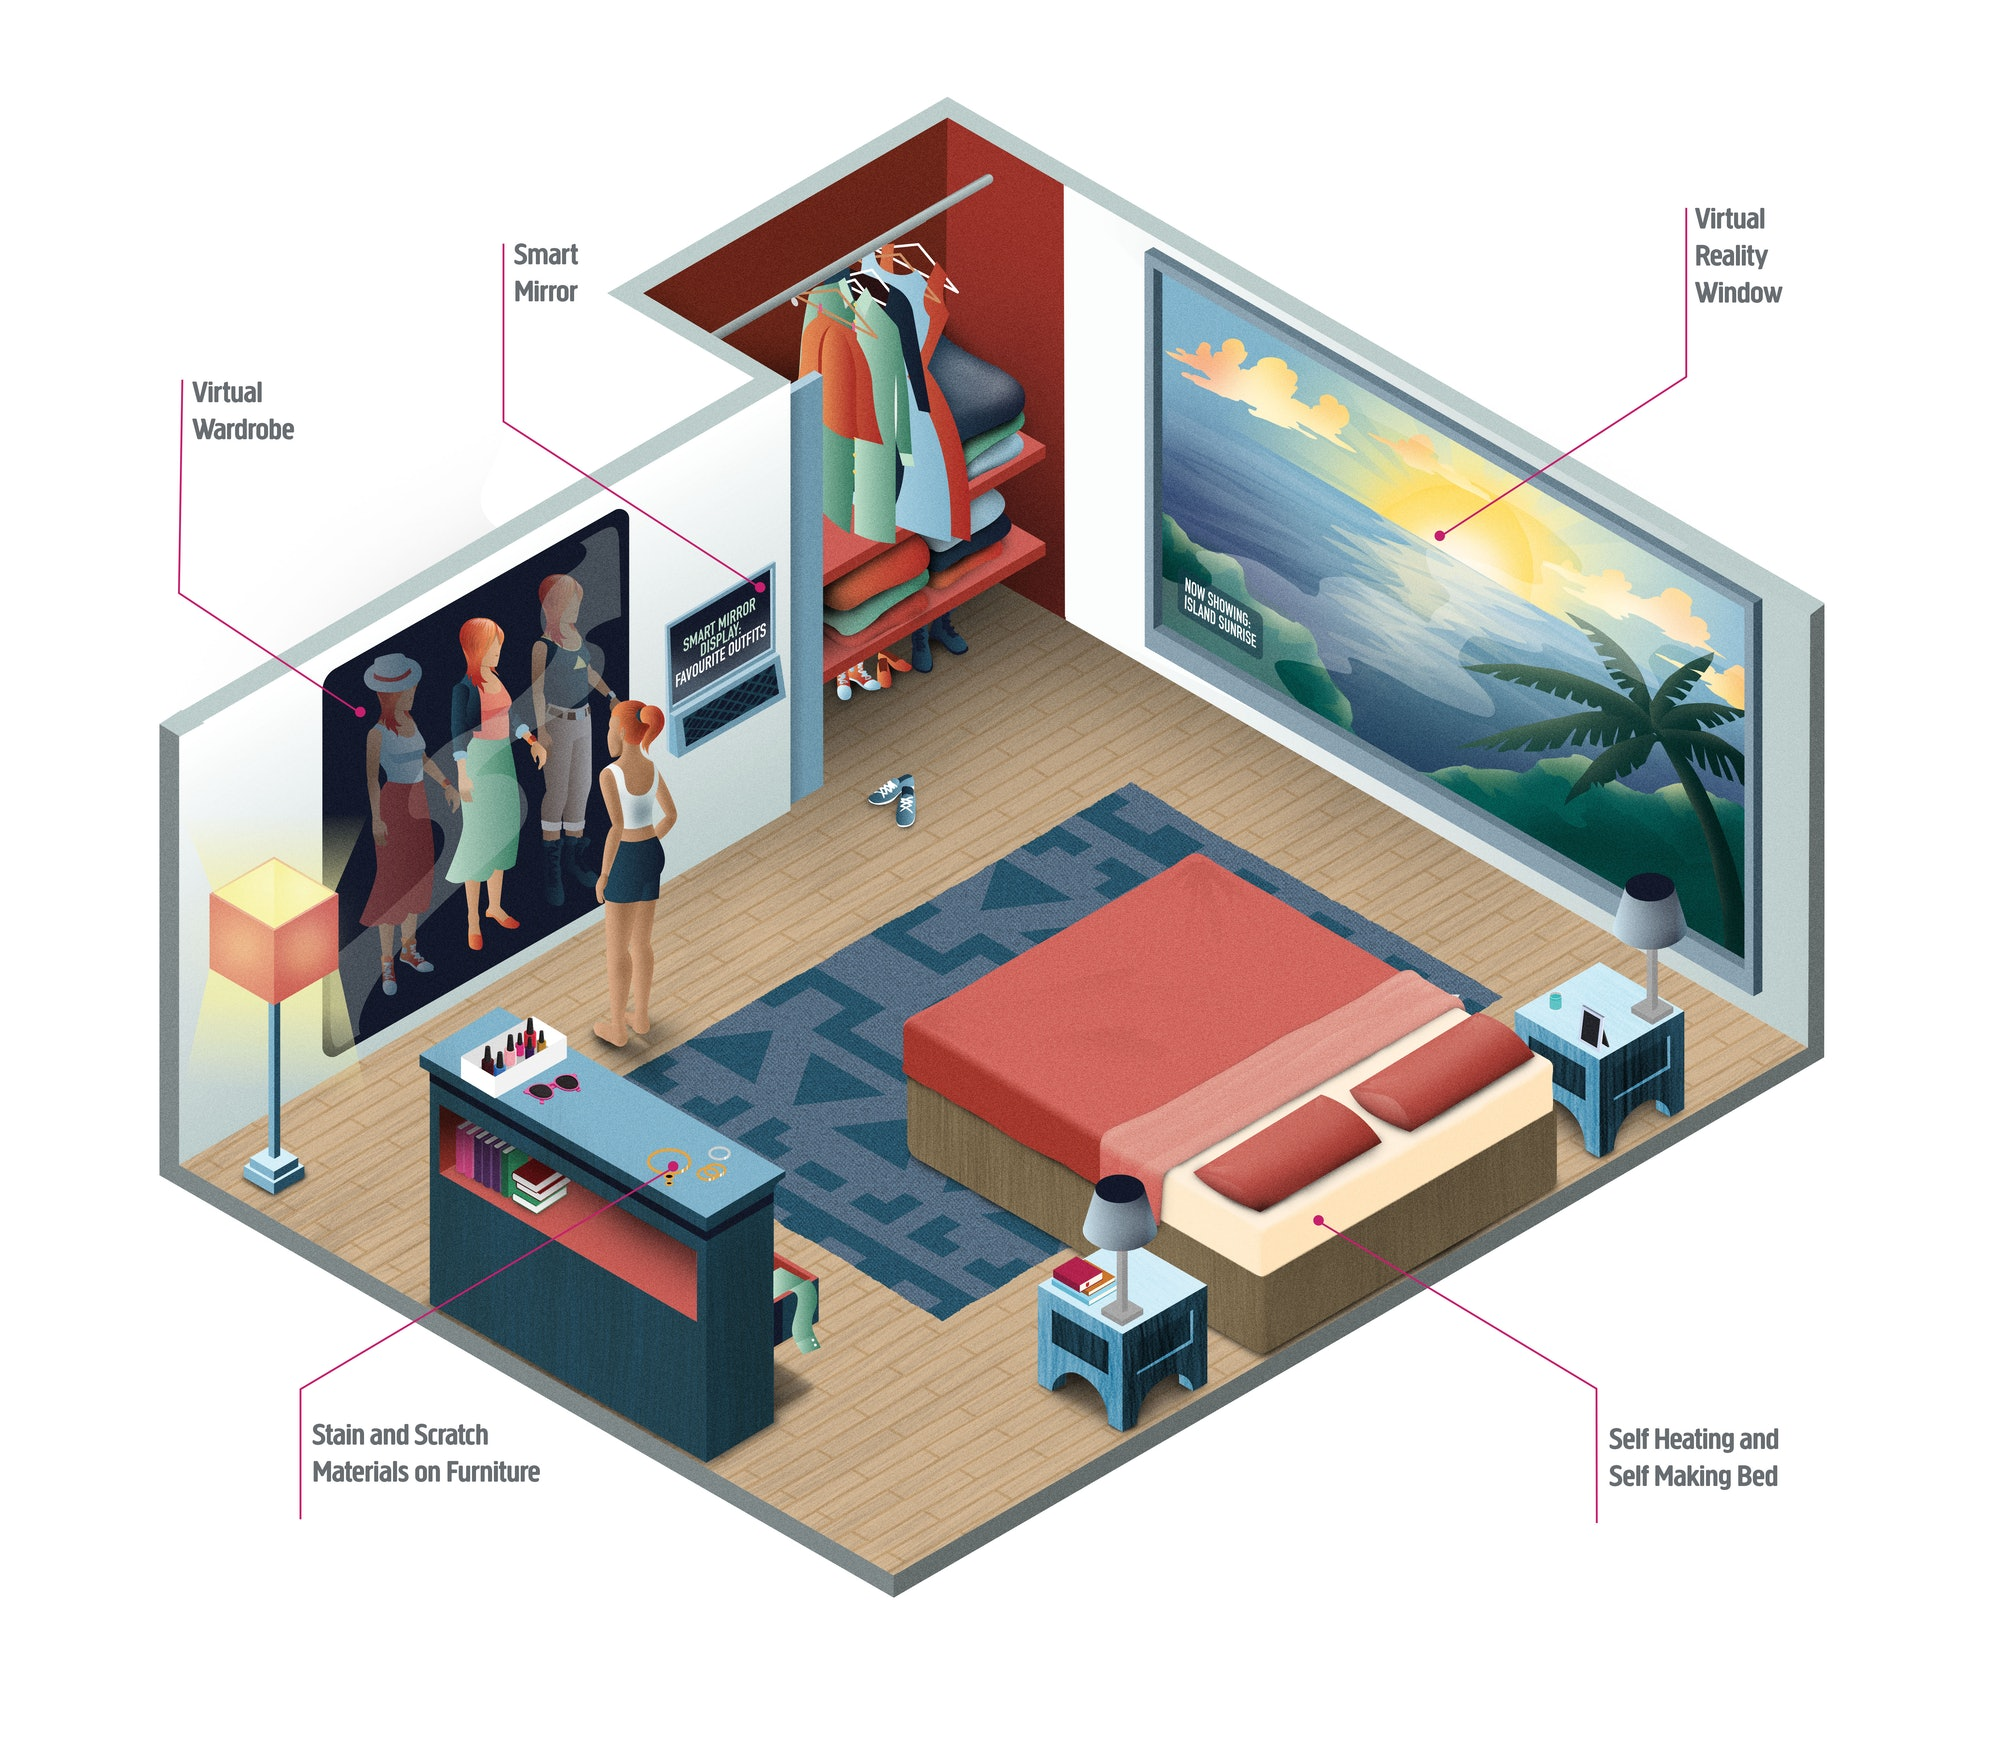 Bedroom of the future.